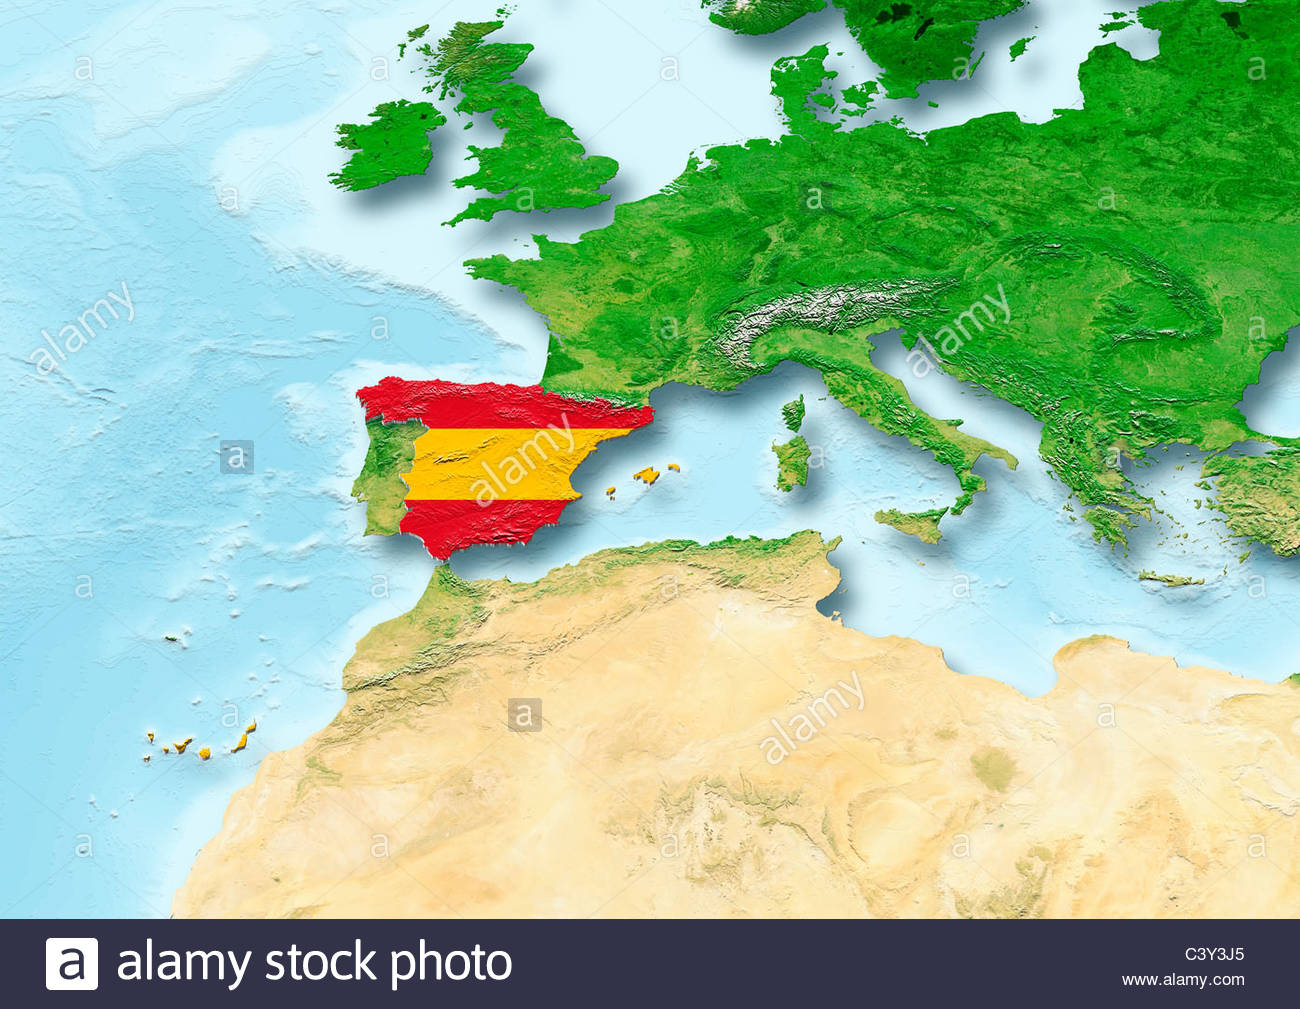 Spain flag map Western Europe physical Stock Photo 36860269 Alamy